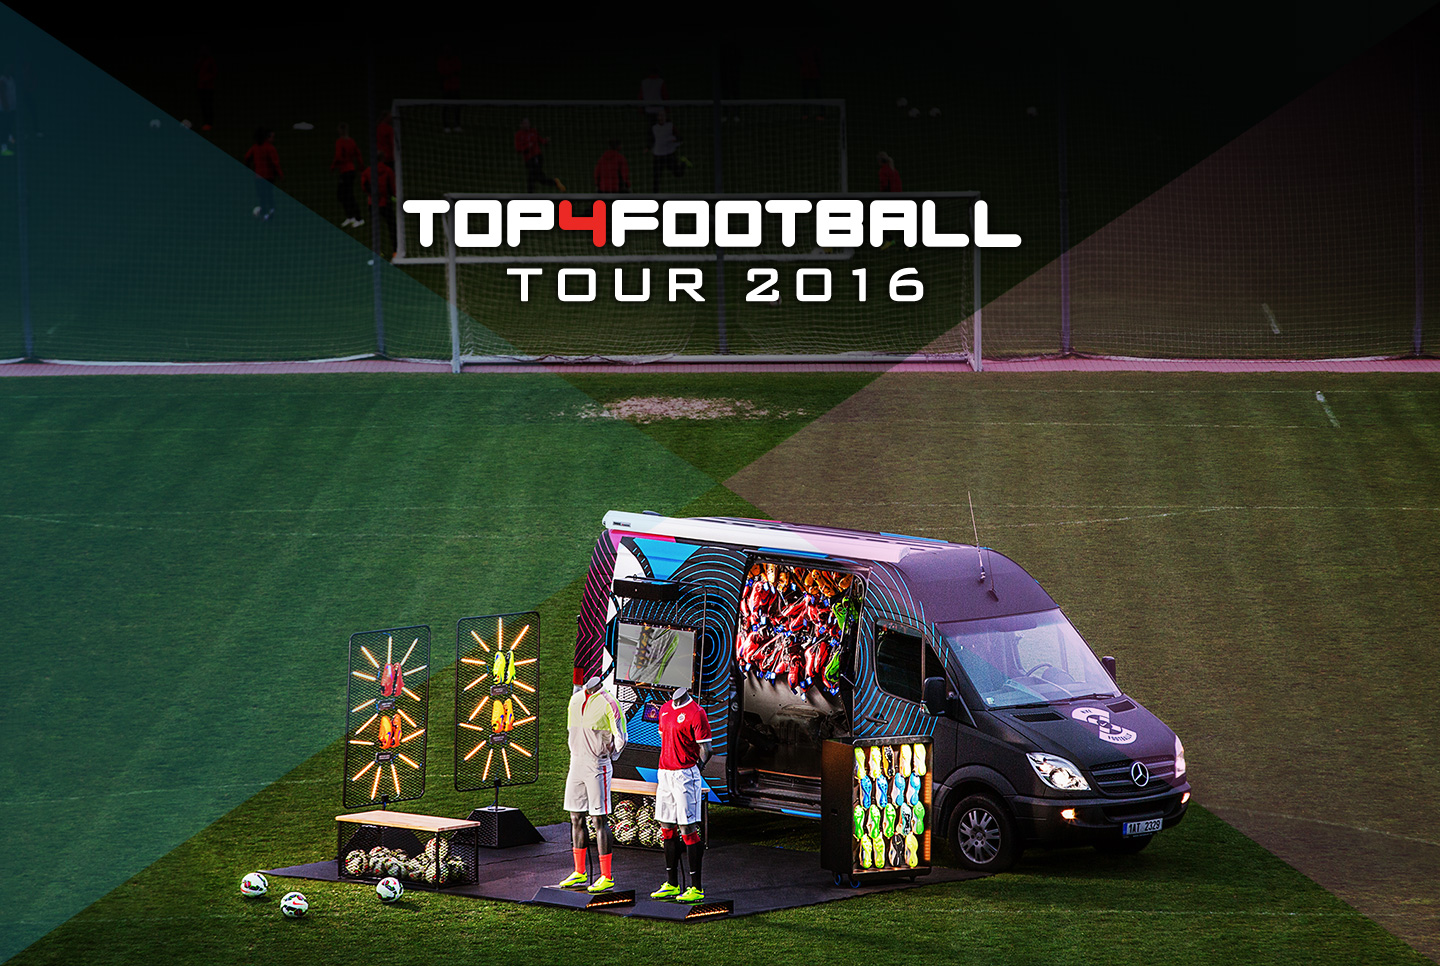 Top4Football Tour 2016